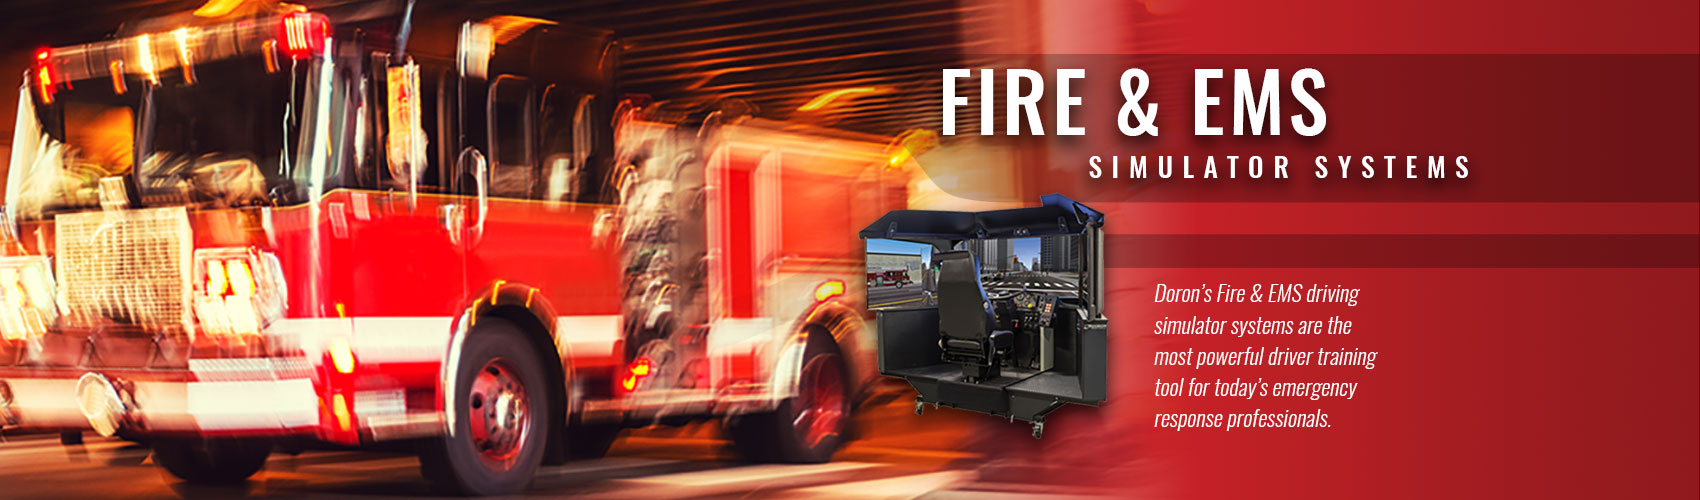 Fire truck simulation